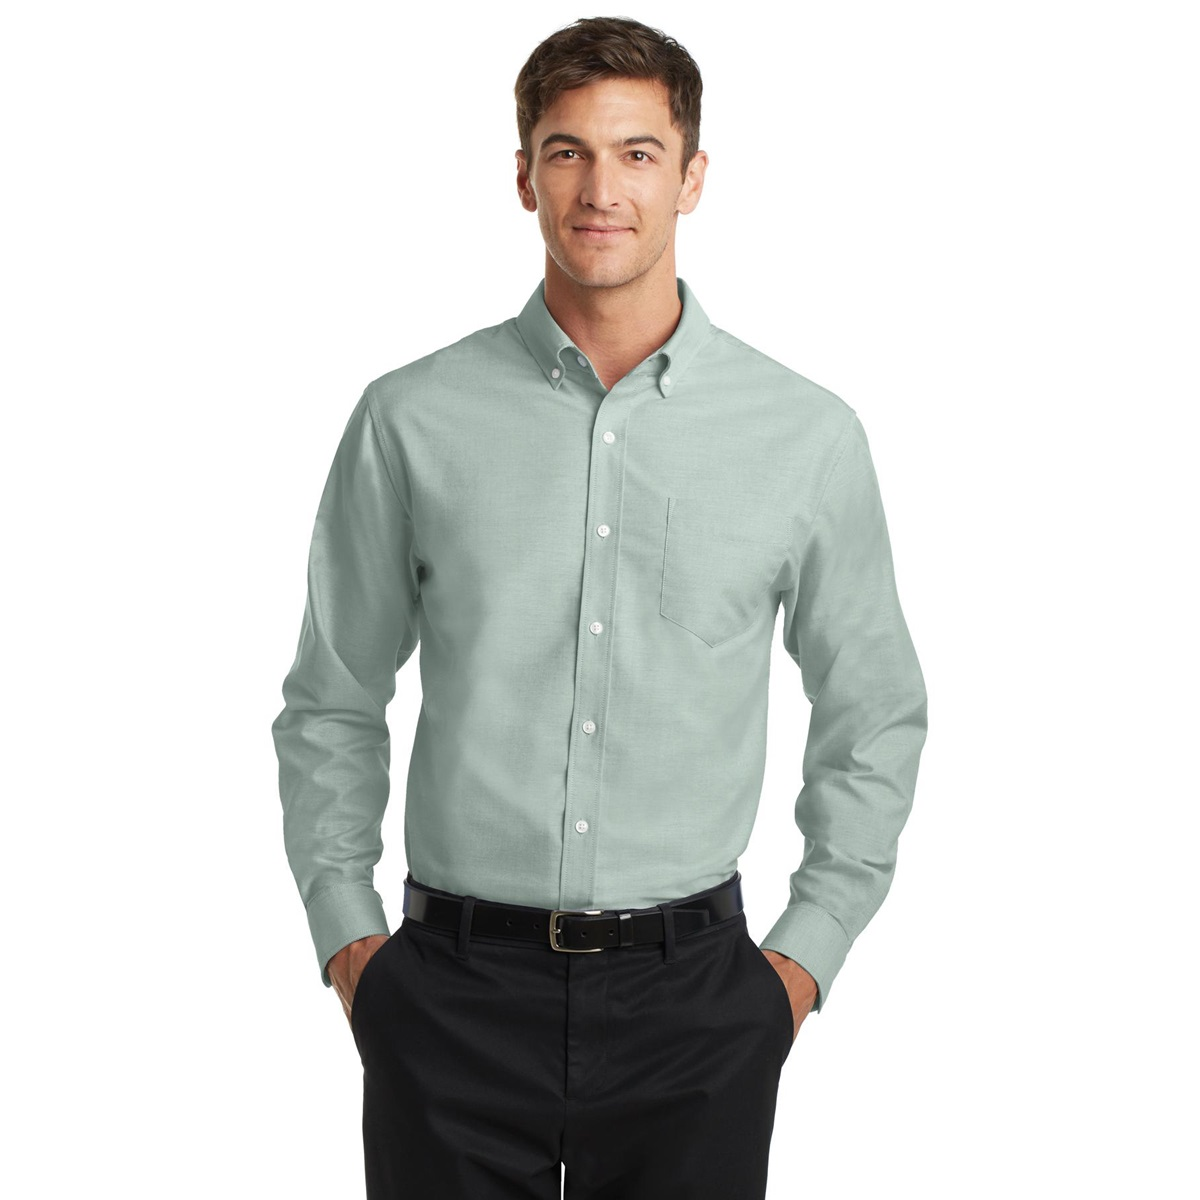 Port authority s658 superpro oxford shirt green for Mens blue oxford shirt